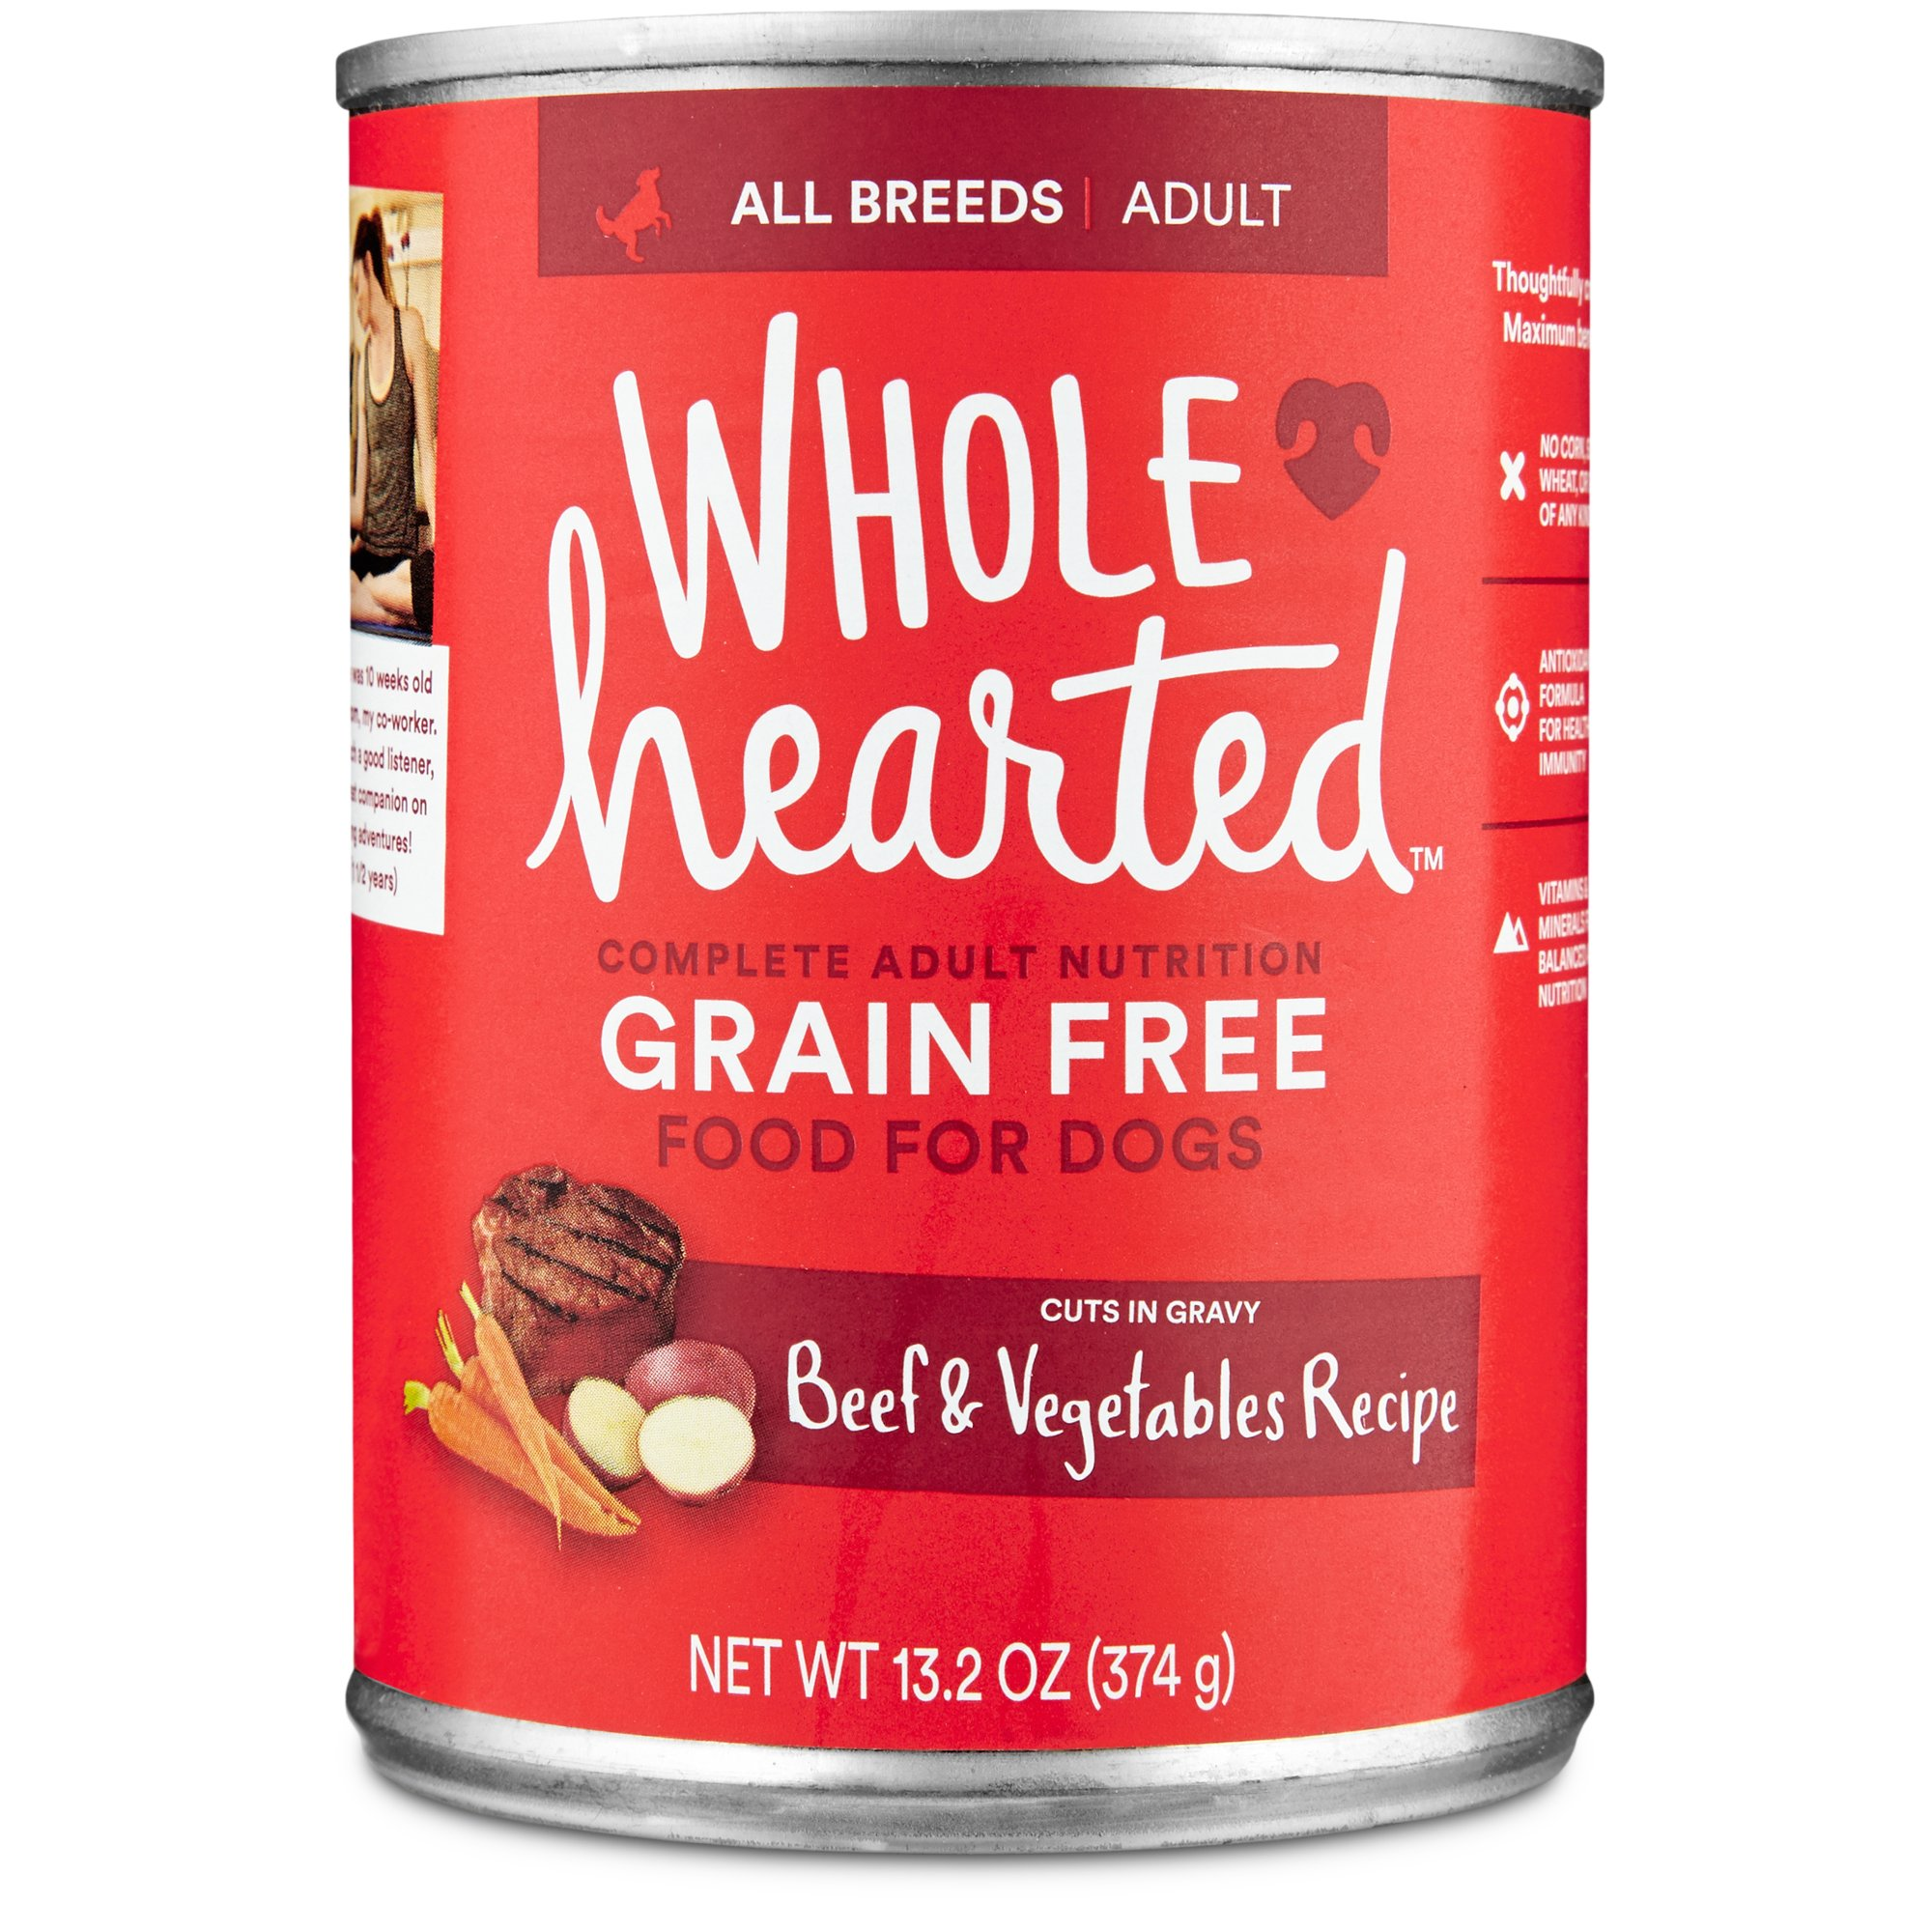 WholeHearted Adult Dog Food - Grain Free Beef & Vegetables Canned Cuts in Gravy